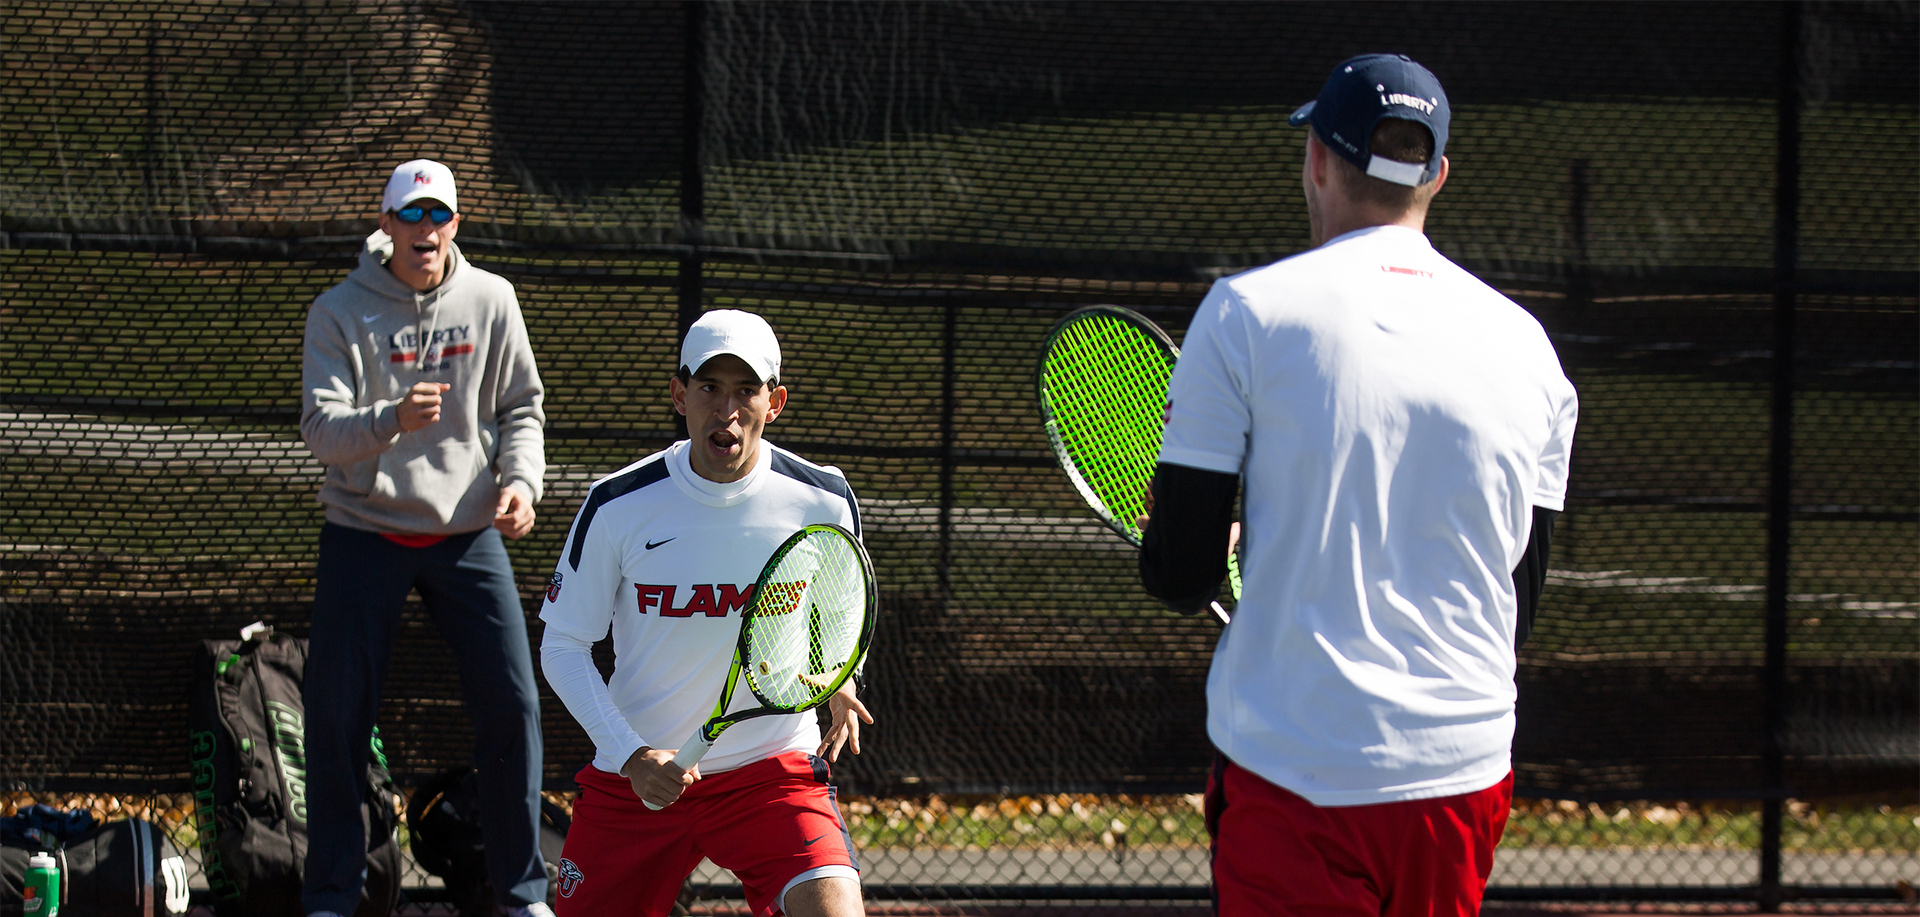 Castano (front right) and Poynter (back left) have been Liberty's most successful doubles unit during the 2016-17 season.